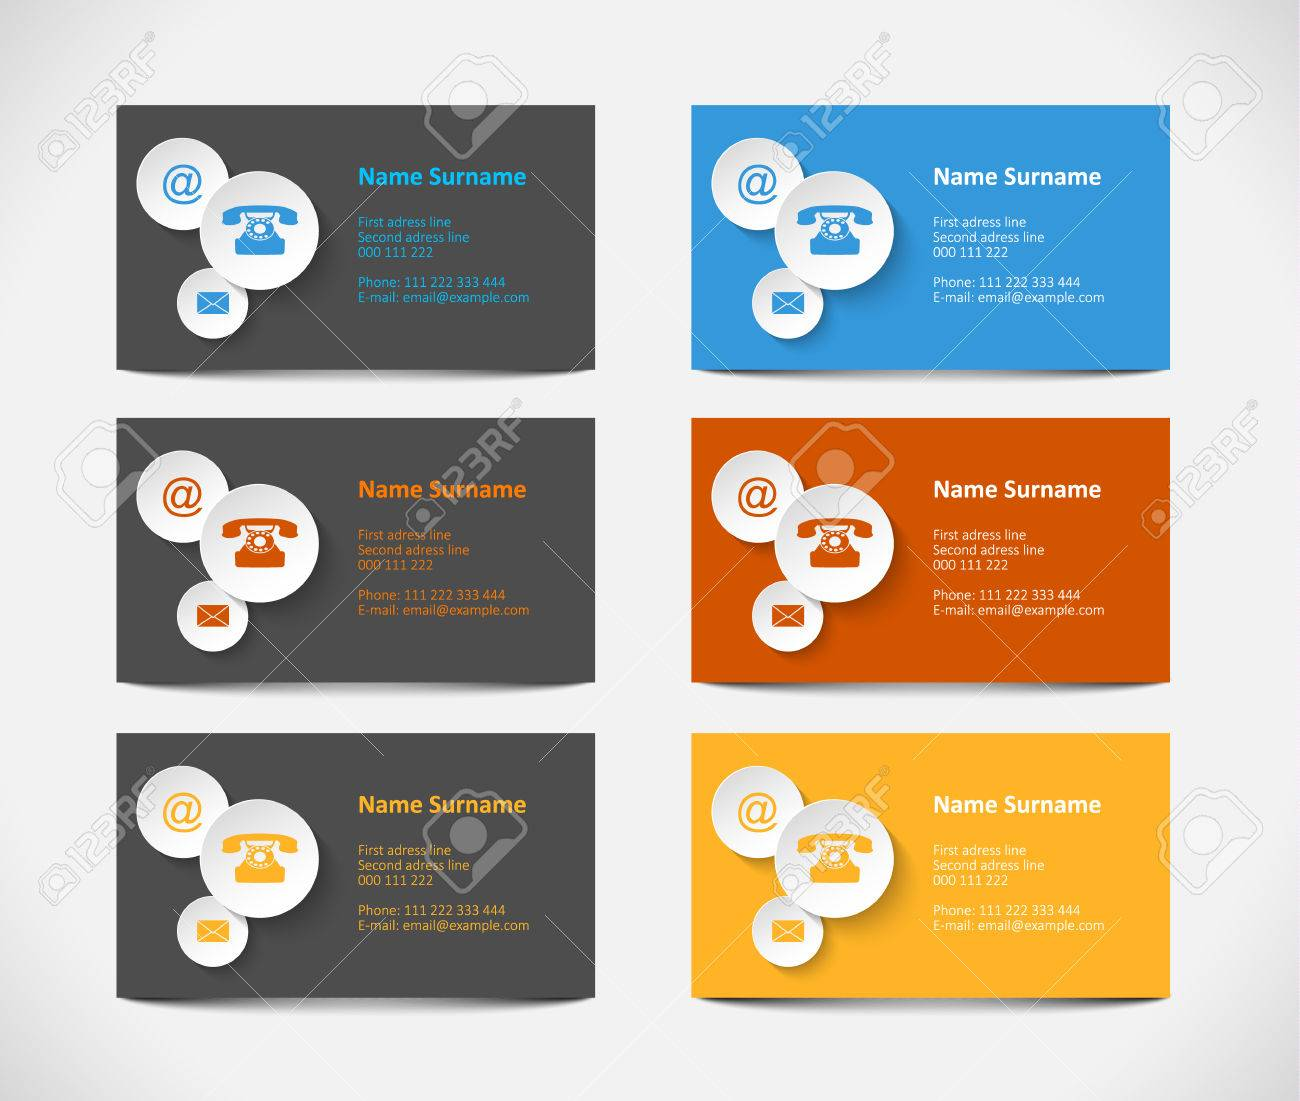 Set Of Visiting Cards With Colorful Icons Vector Illustration